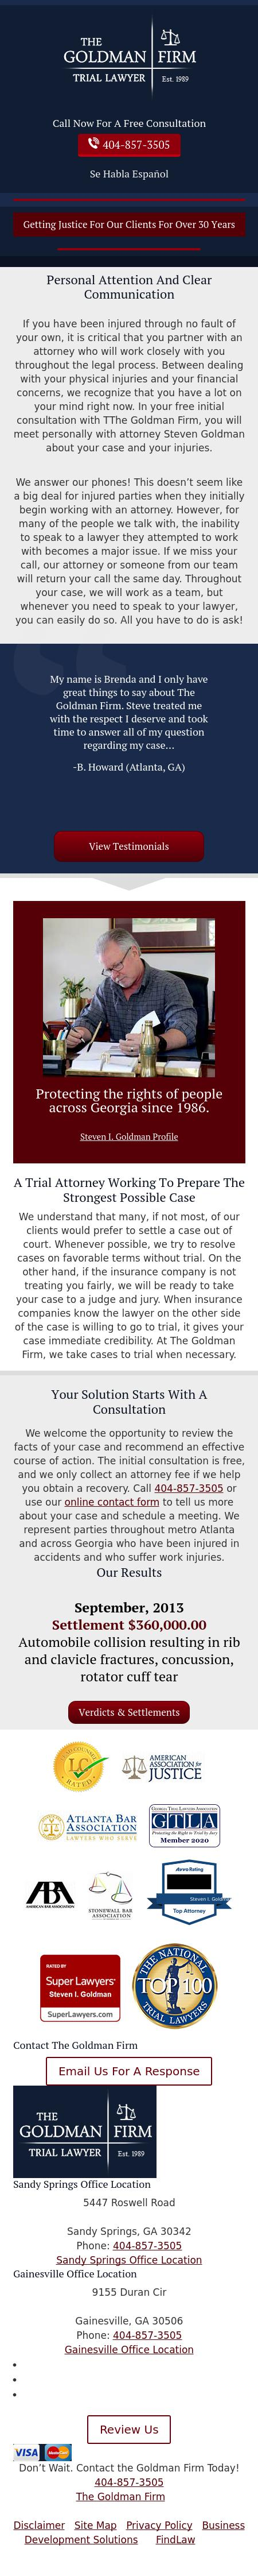 The Goldman Firm - Atlanta GA Lawyers